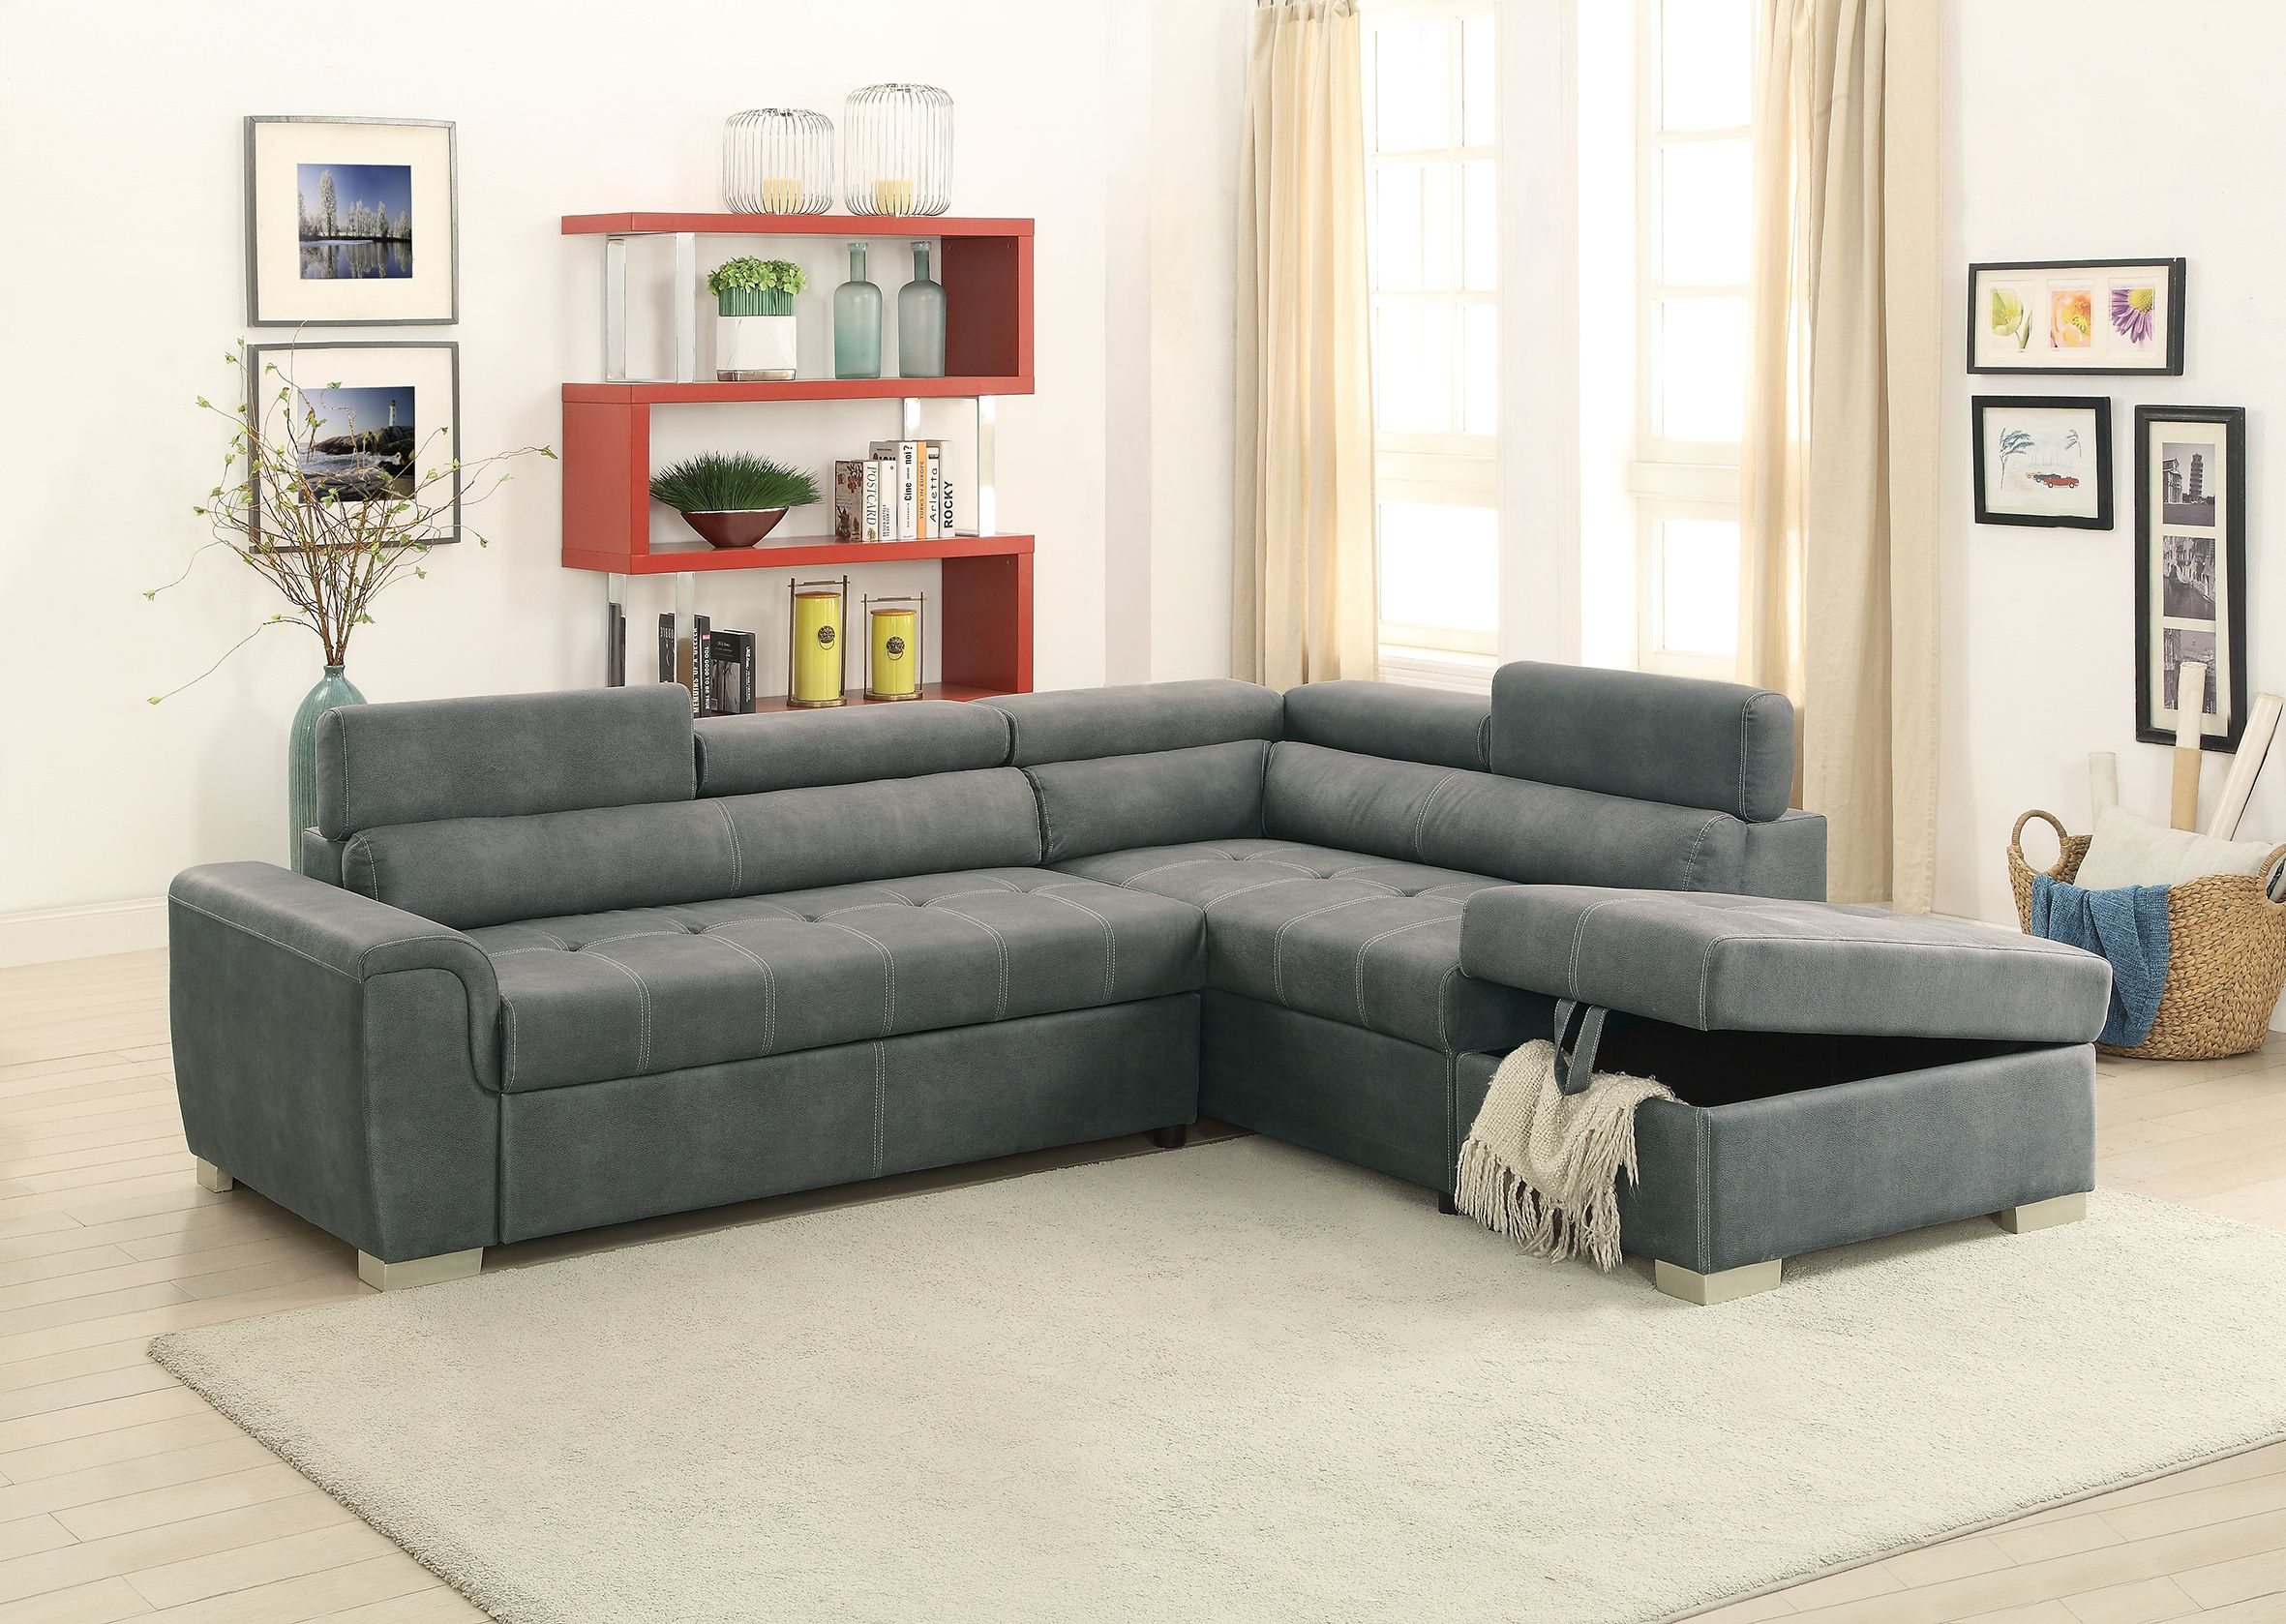 F6550 Slate Gray Convertible Sectional Sofa Set By Poundex Sectional Sofa Sofa Set Pull Out Bed